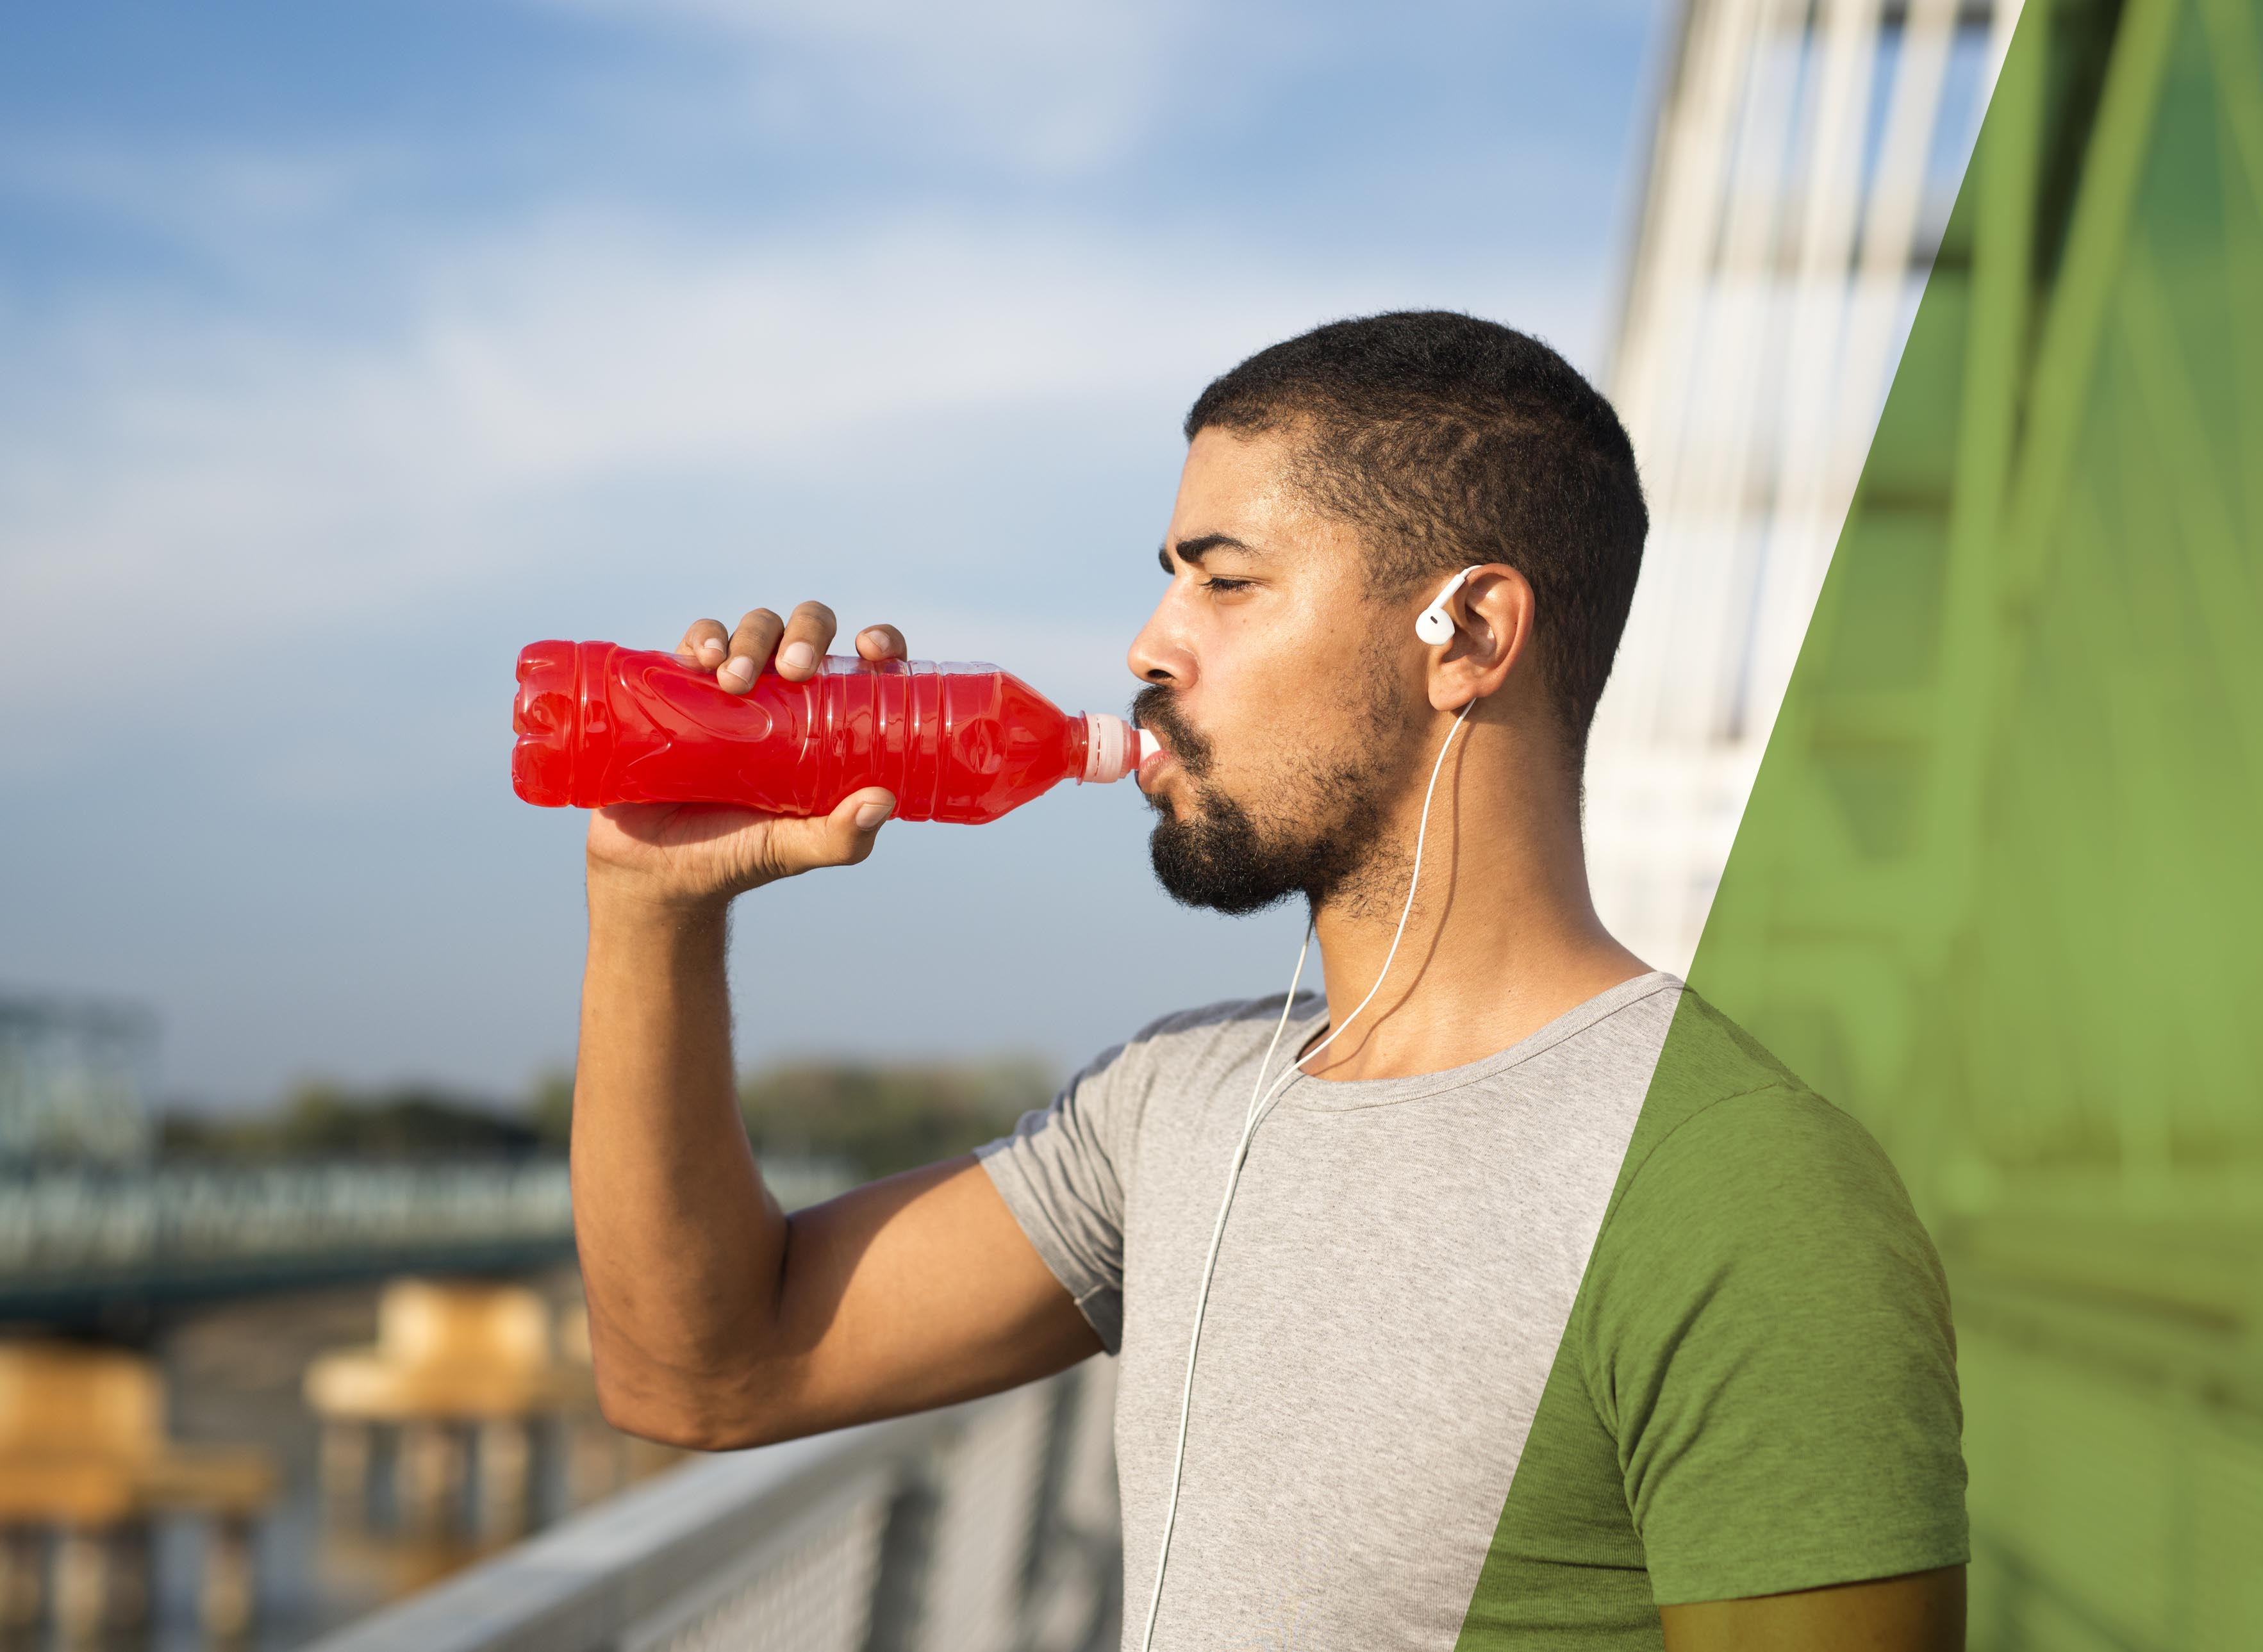 An athlete drinking juice for energy and training.